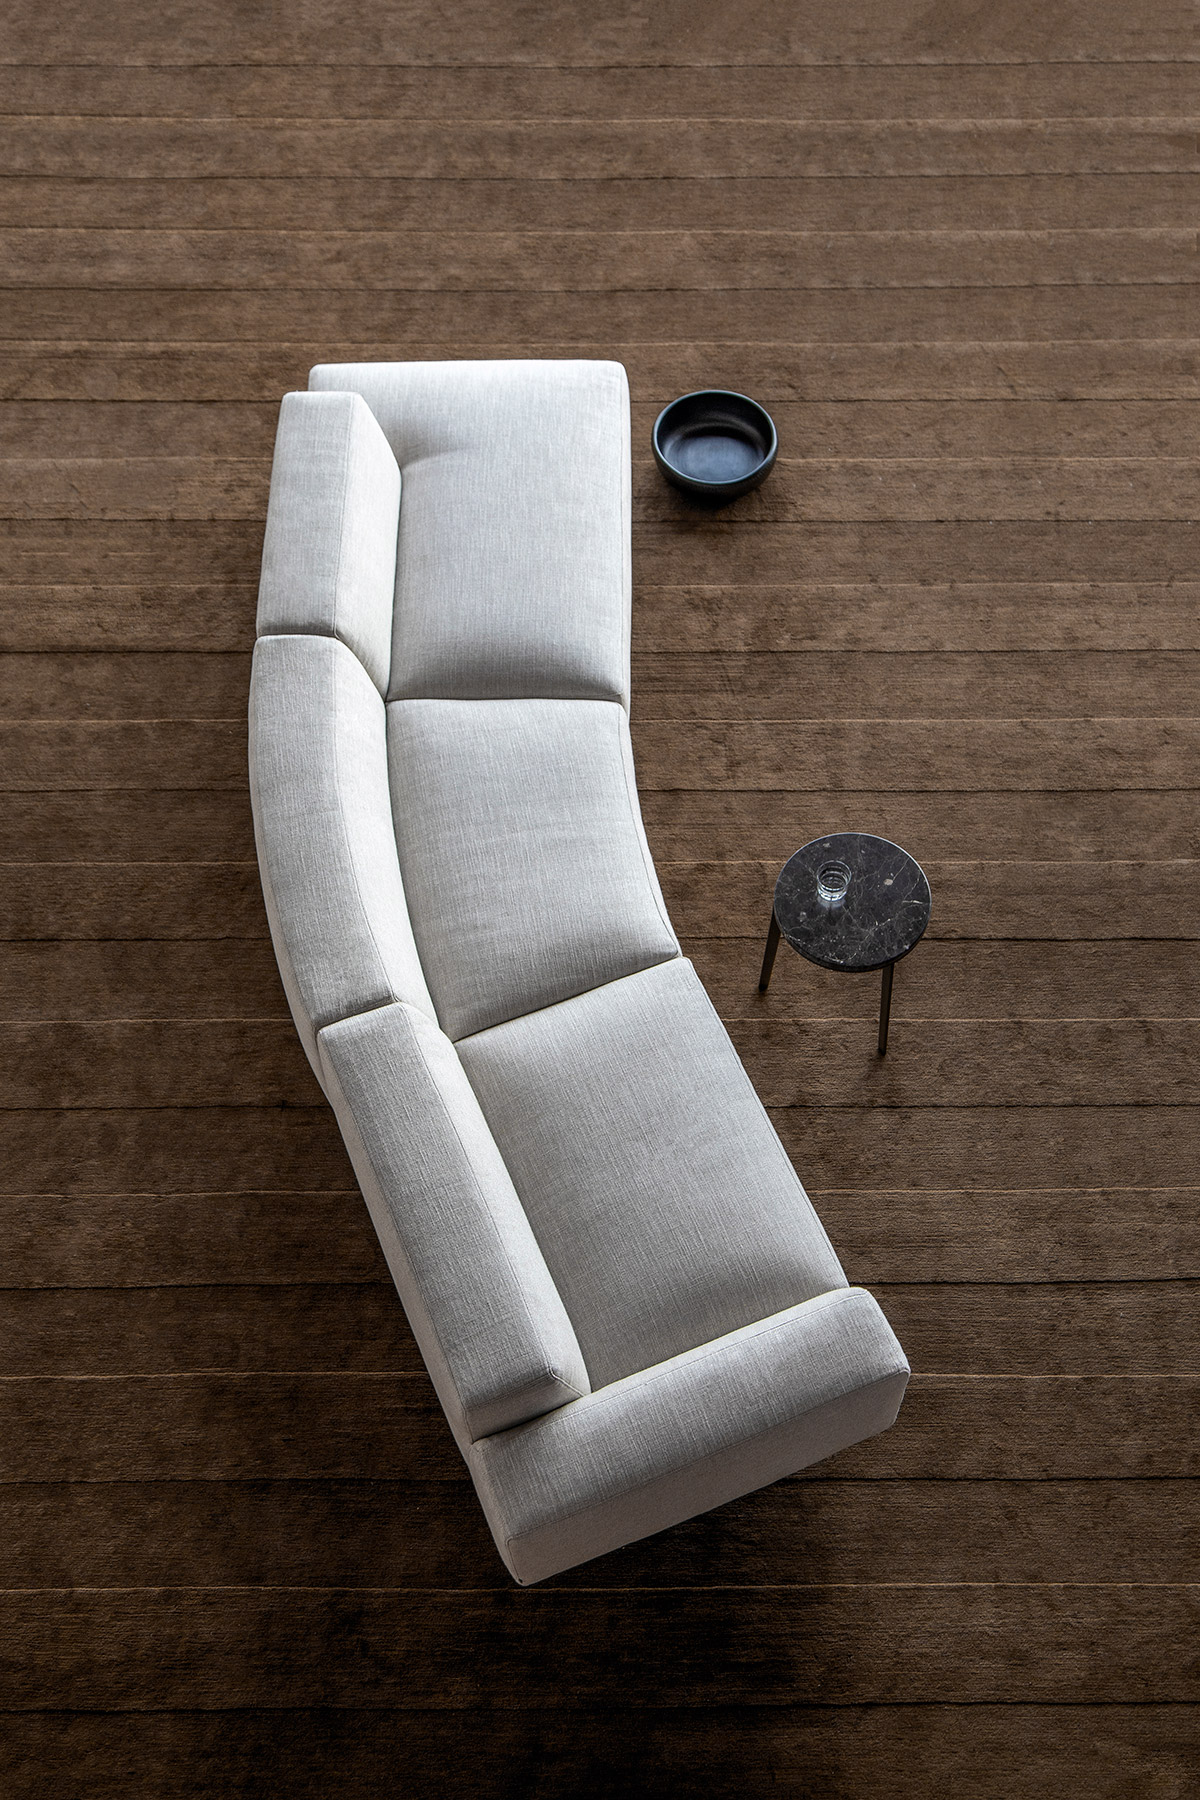 Endless sofa by Bensen in grey fabric on brown carpet